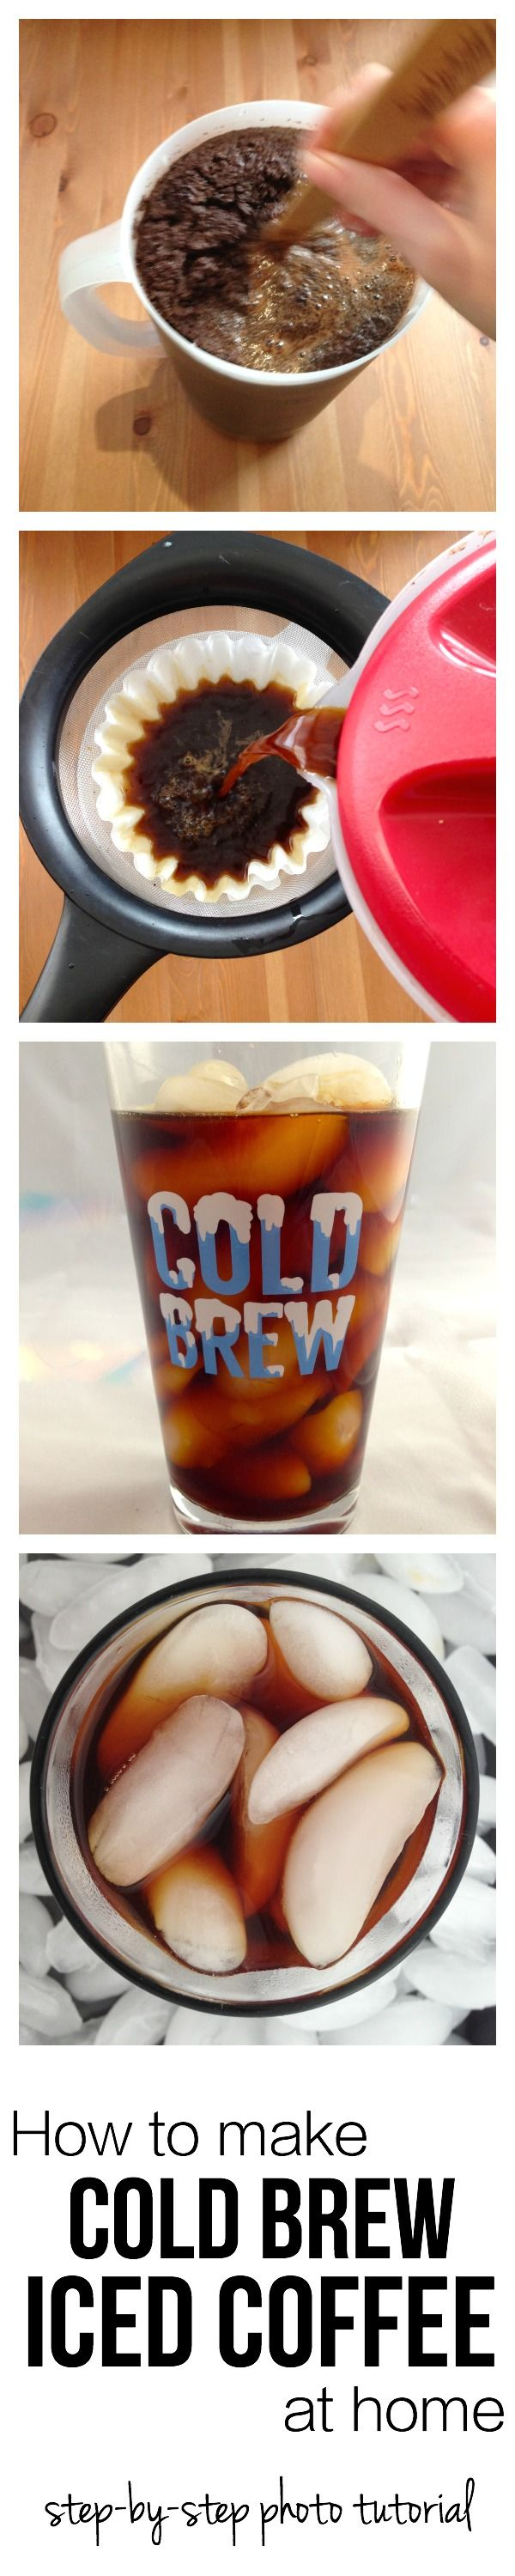 How To Iced Coffee at Home Recipe Iced coffee at home